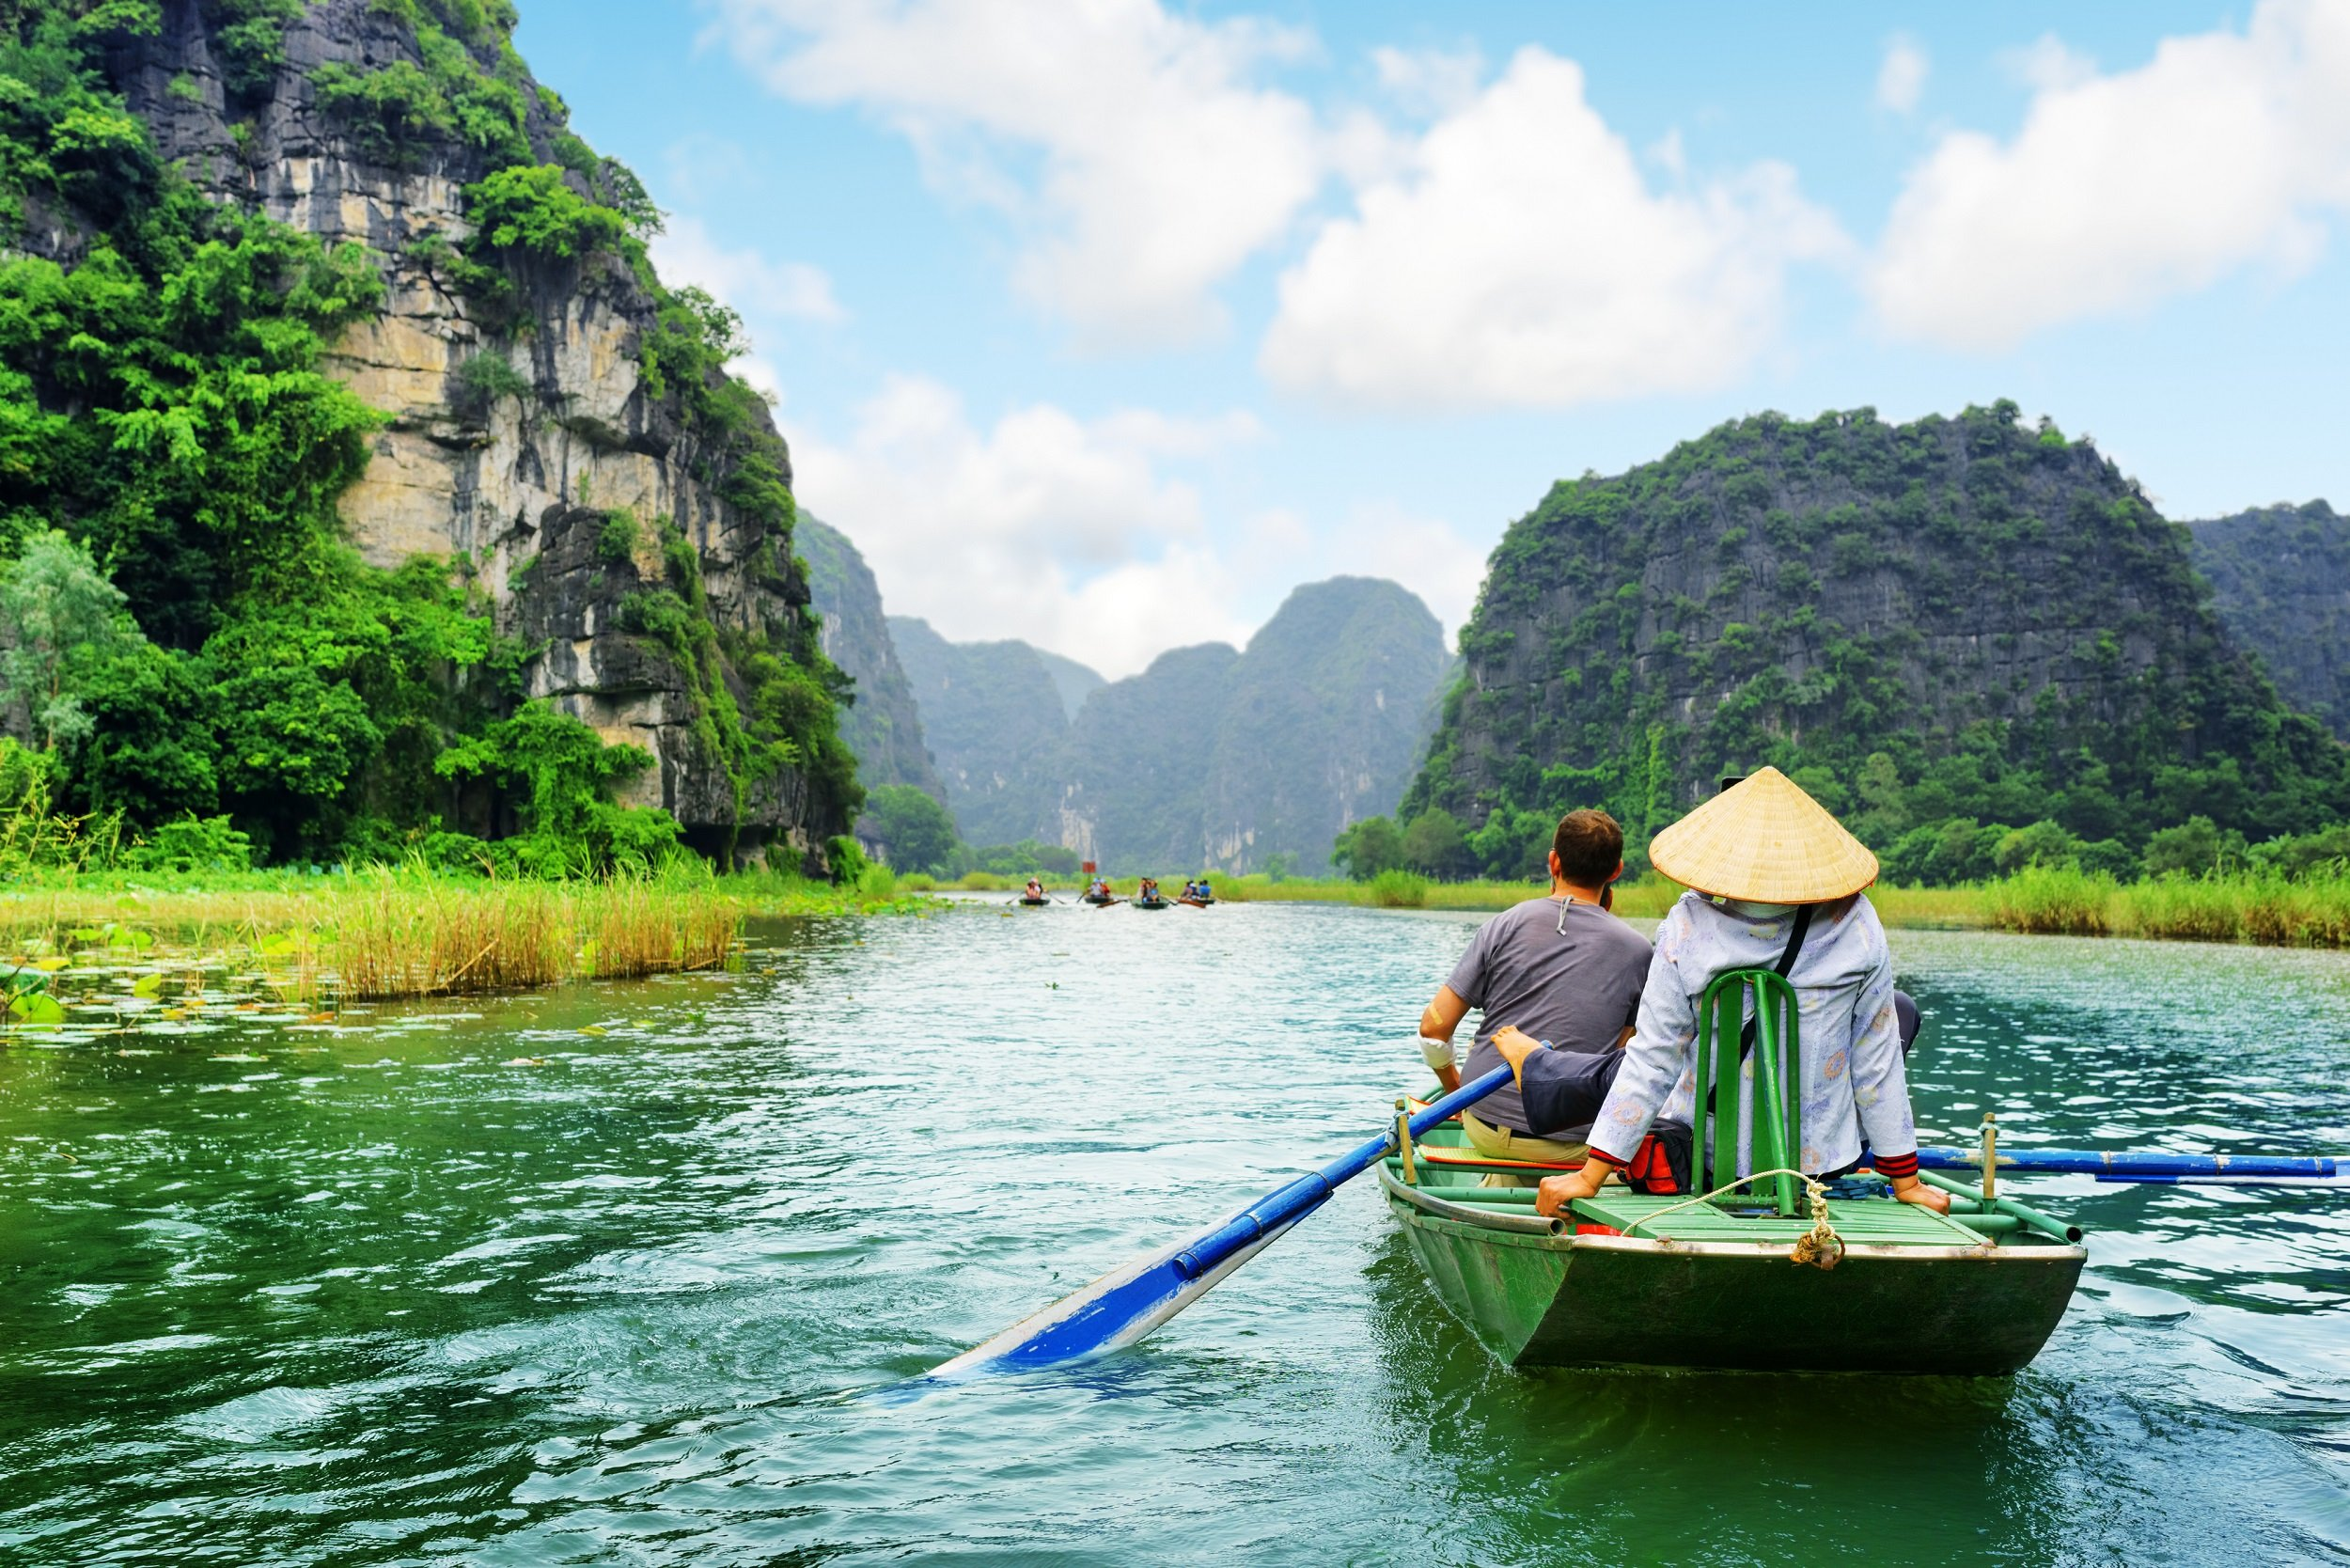 Take A Boat Ride On The Ngo Dong River On The Ninh Binh, Tam Coc, Dancing Cave & Hoa Lu Tour From Hanoi